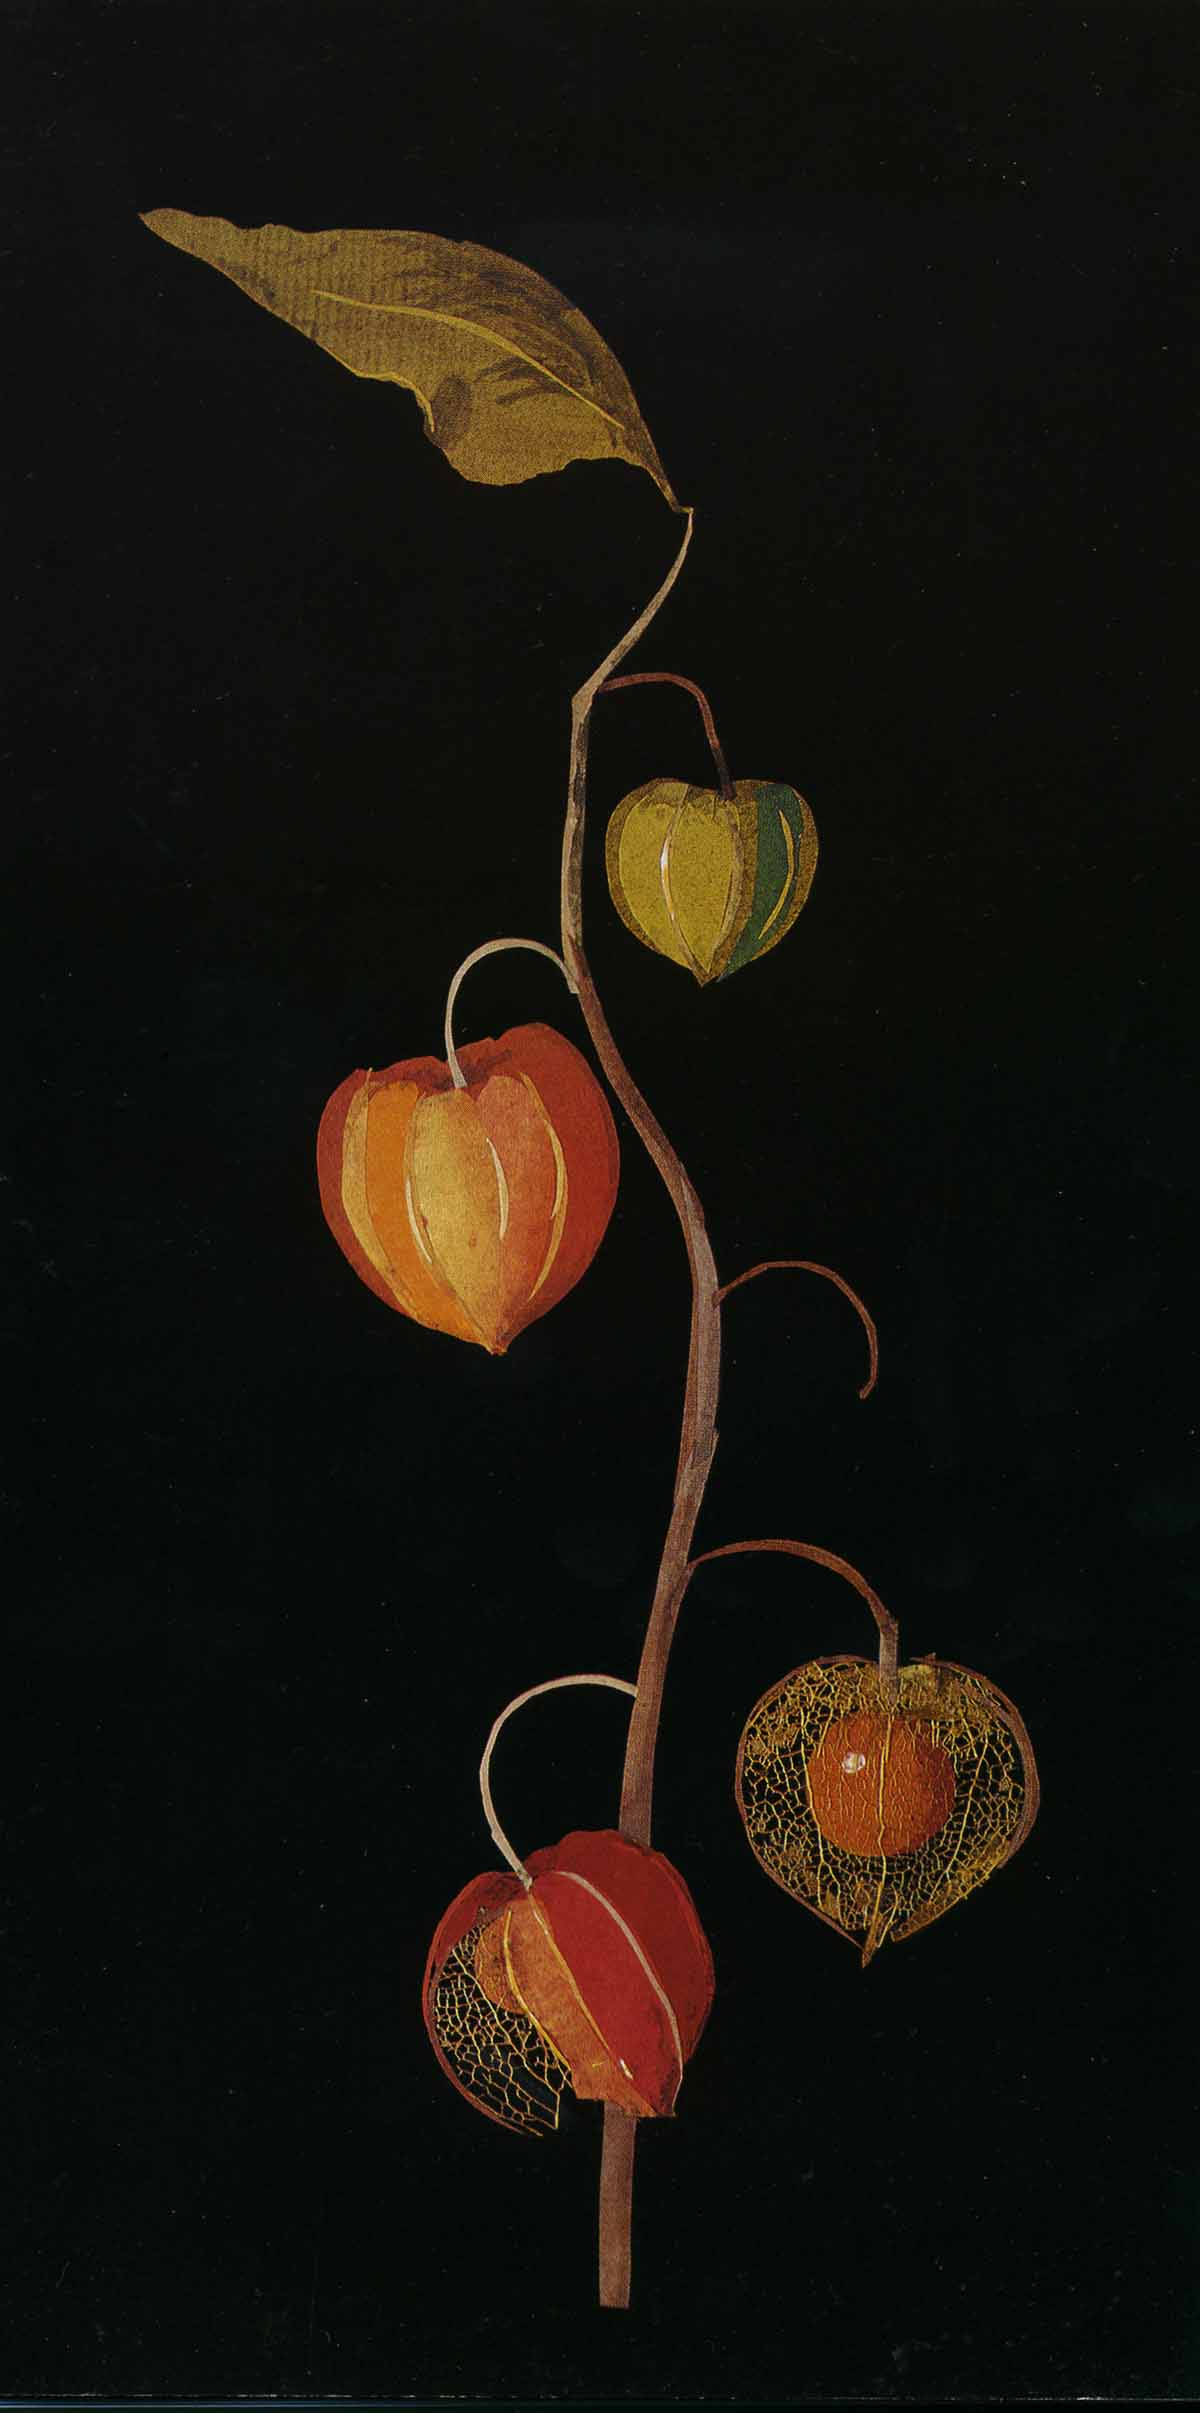 Physalis, Winter Cherry (Berry), Bulstrode, November (year not specified)